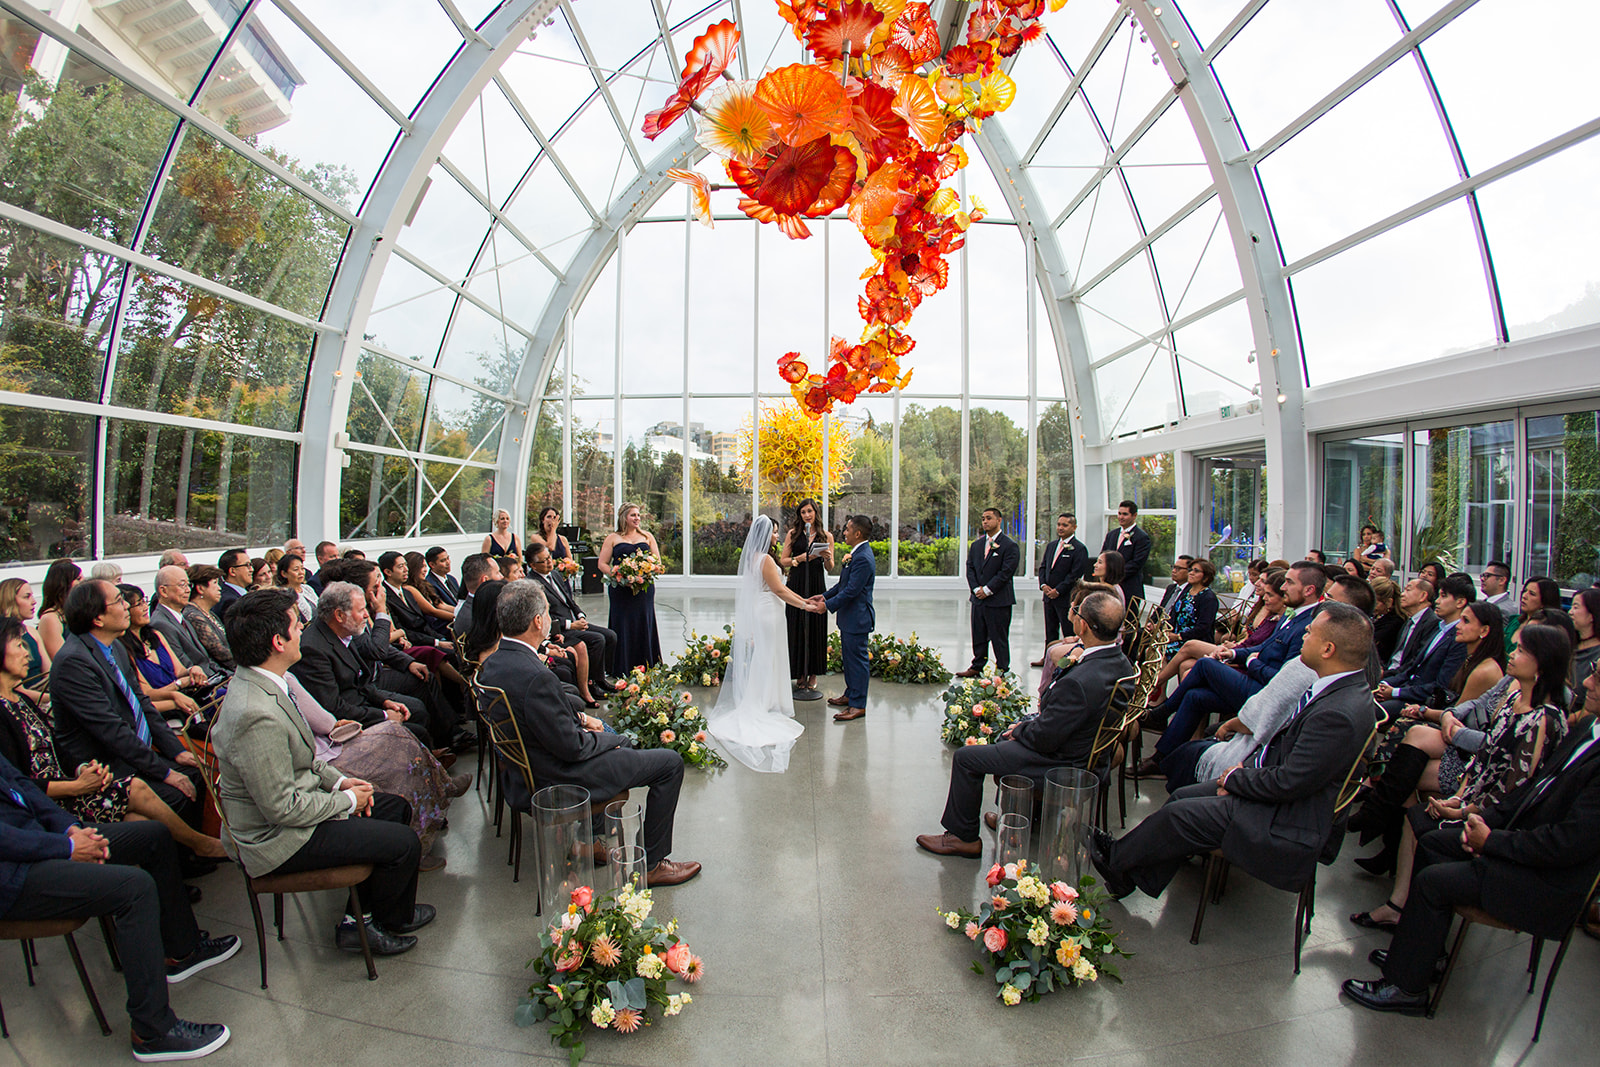 Fall navy blue and burnt orange wedding ceremony in the glass house at Chihuly, bride and groom surrounded by wedding guests | Flora Nova Design Seattle